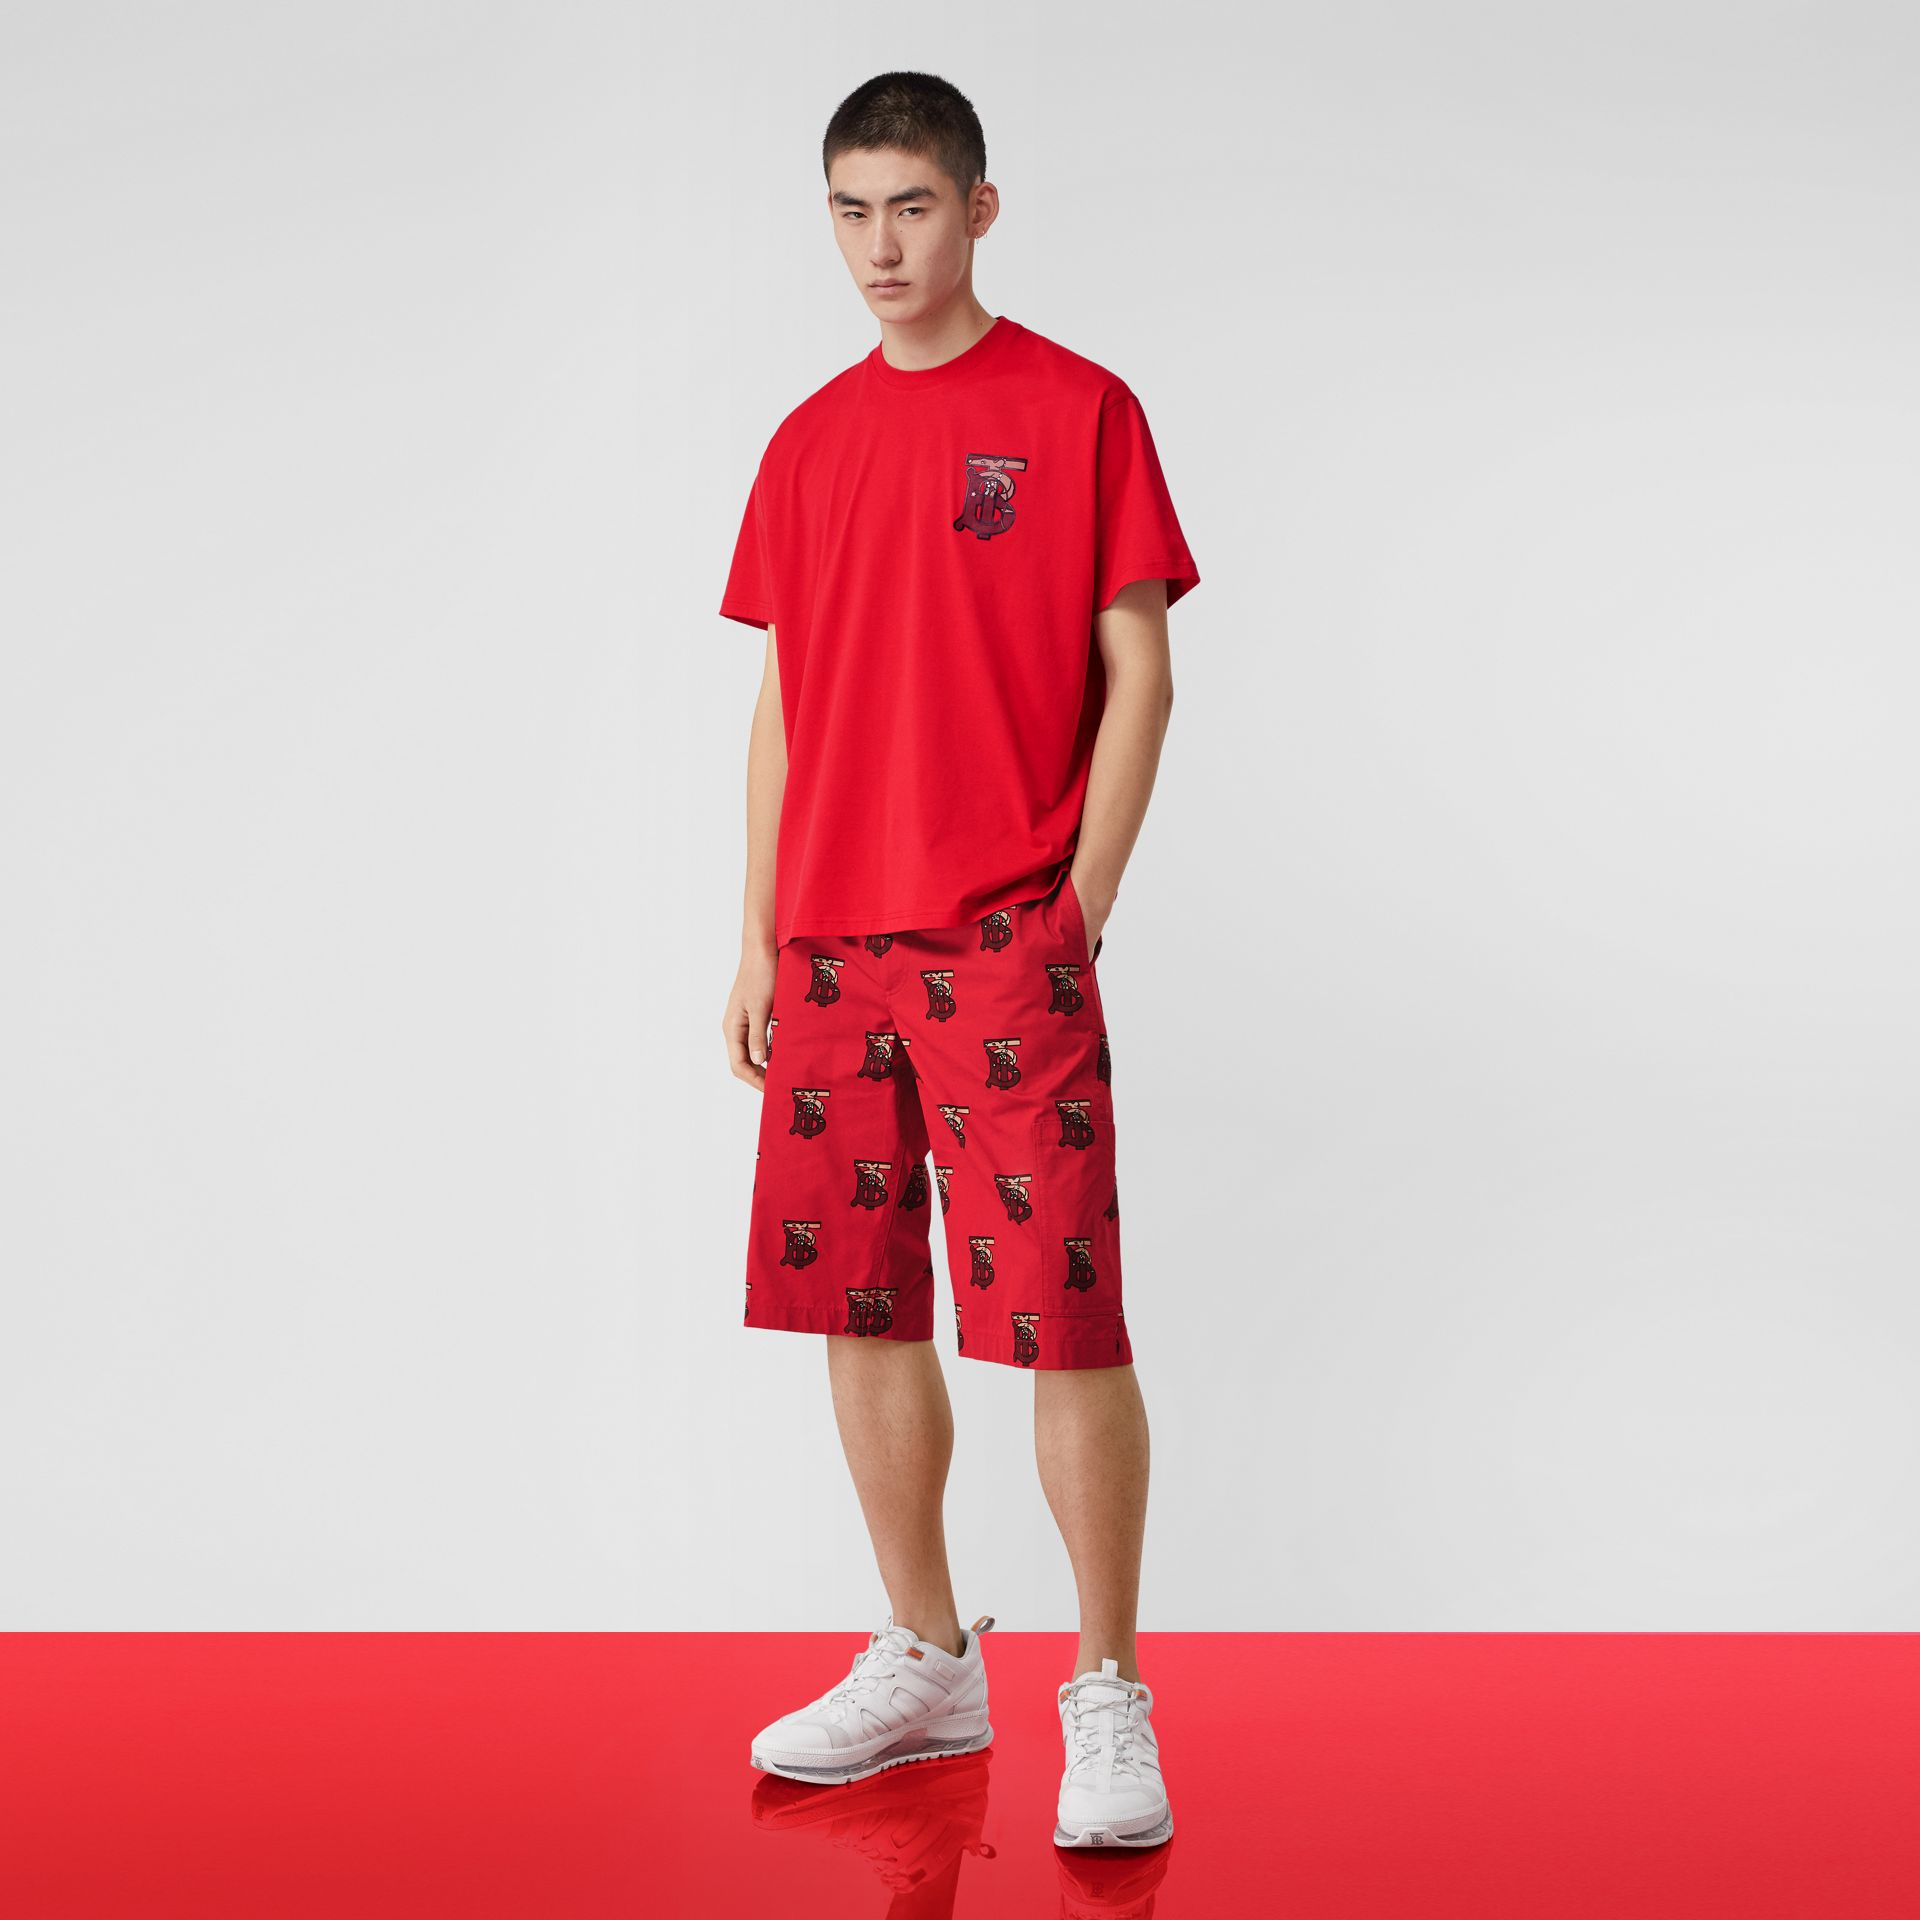 Monogram Motif Cotton Oversized T-shirt in Racing Red - Men | Burberry United Kingdom - gallery image 5